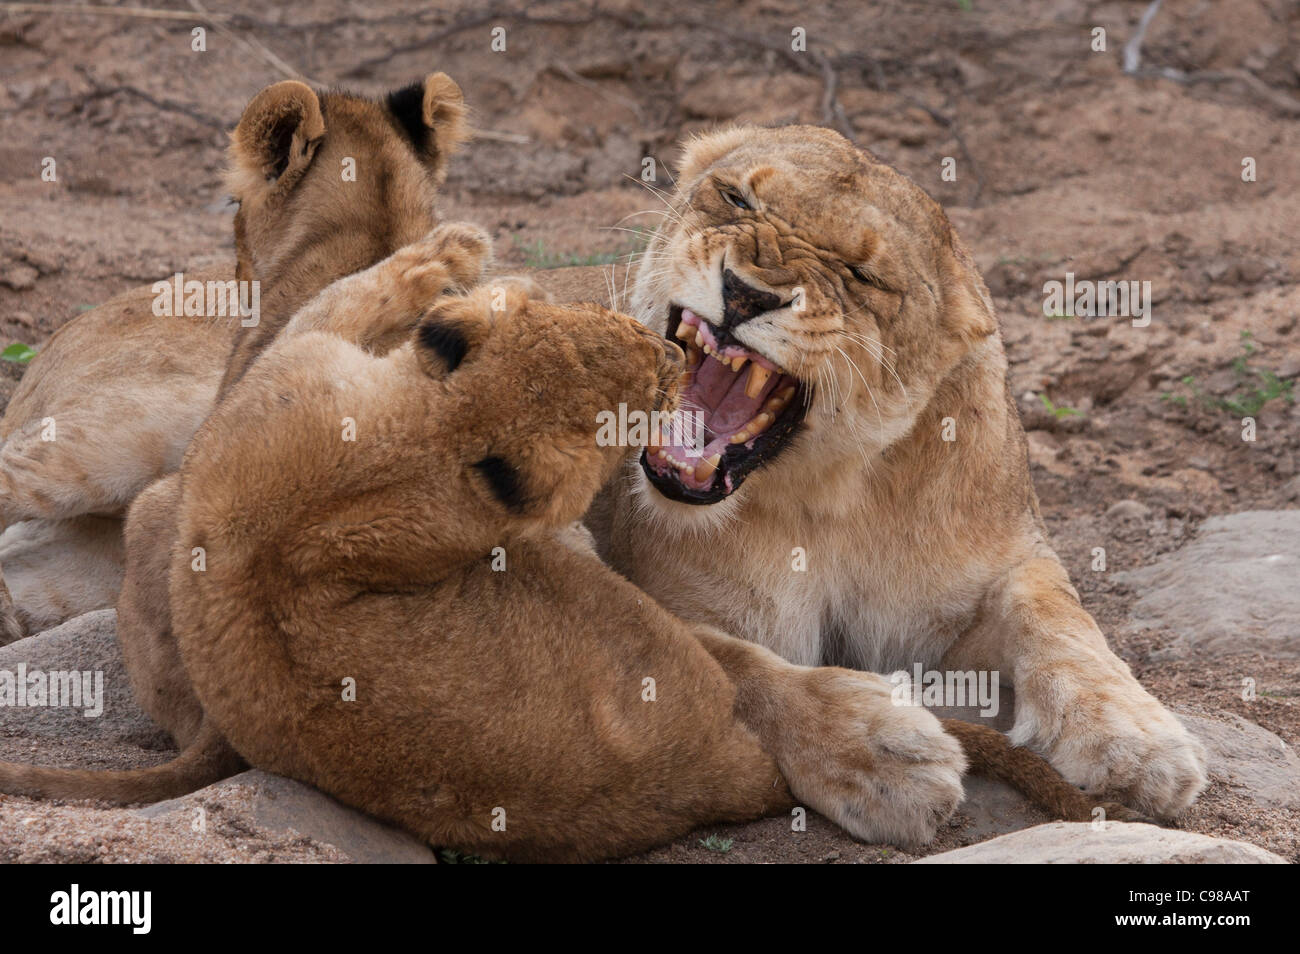 Lioness snarling aggressively at cub - Stock Image